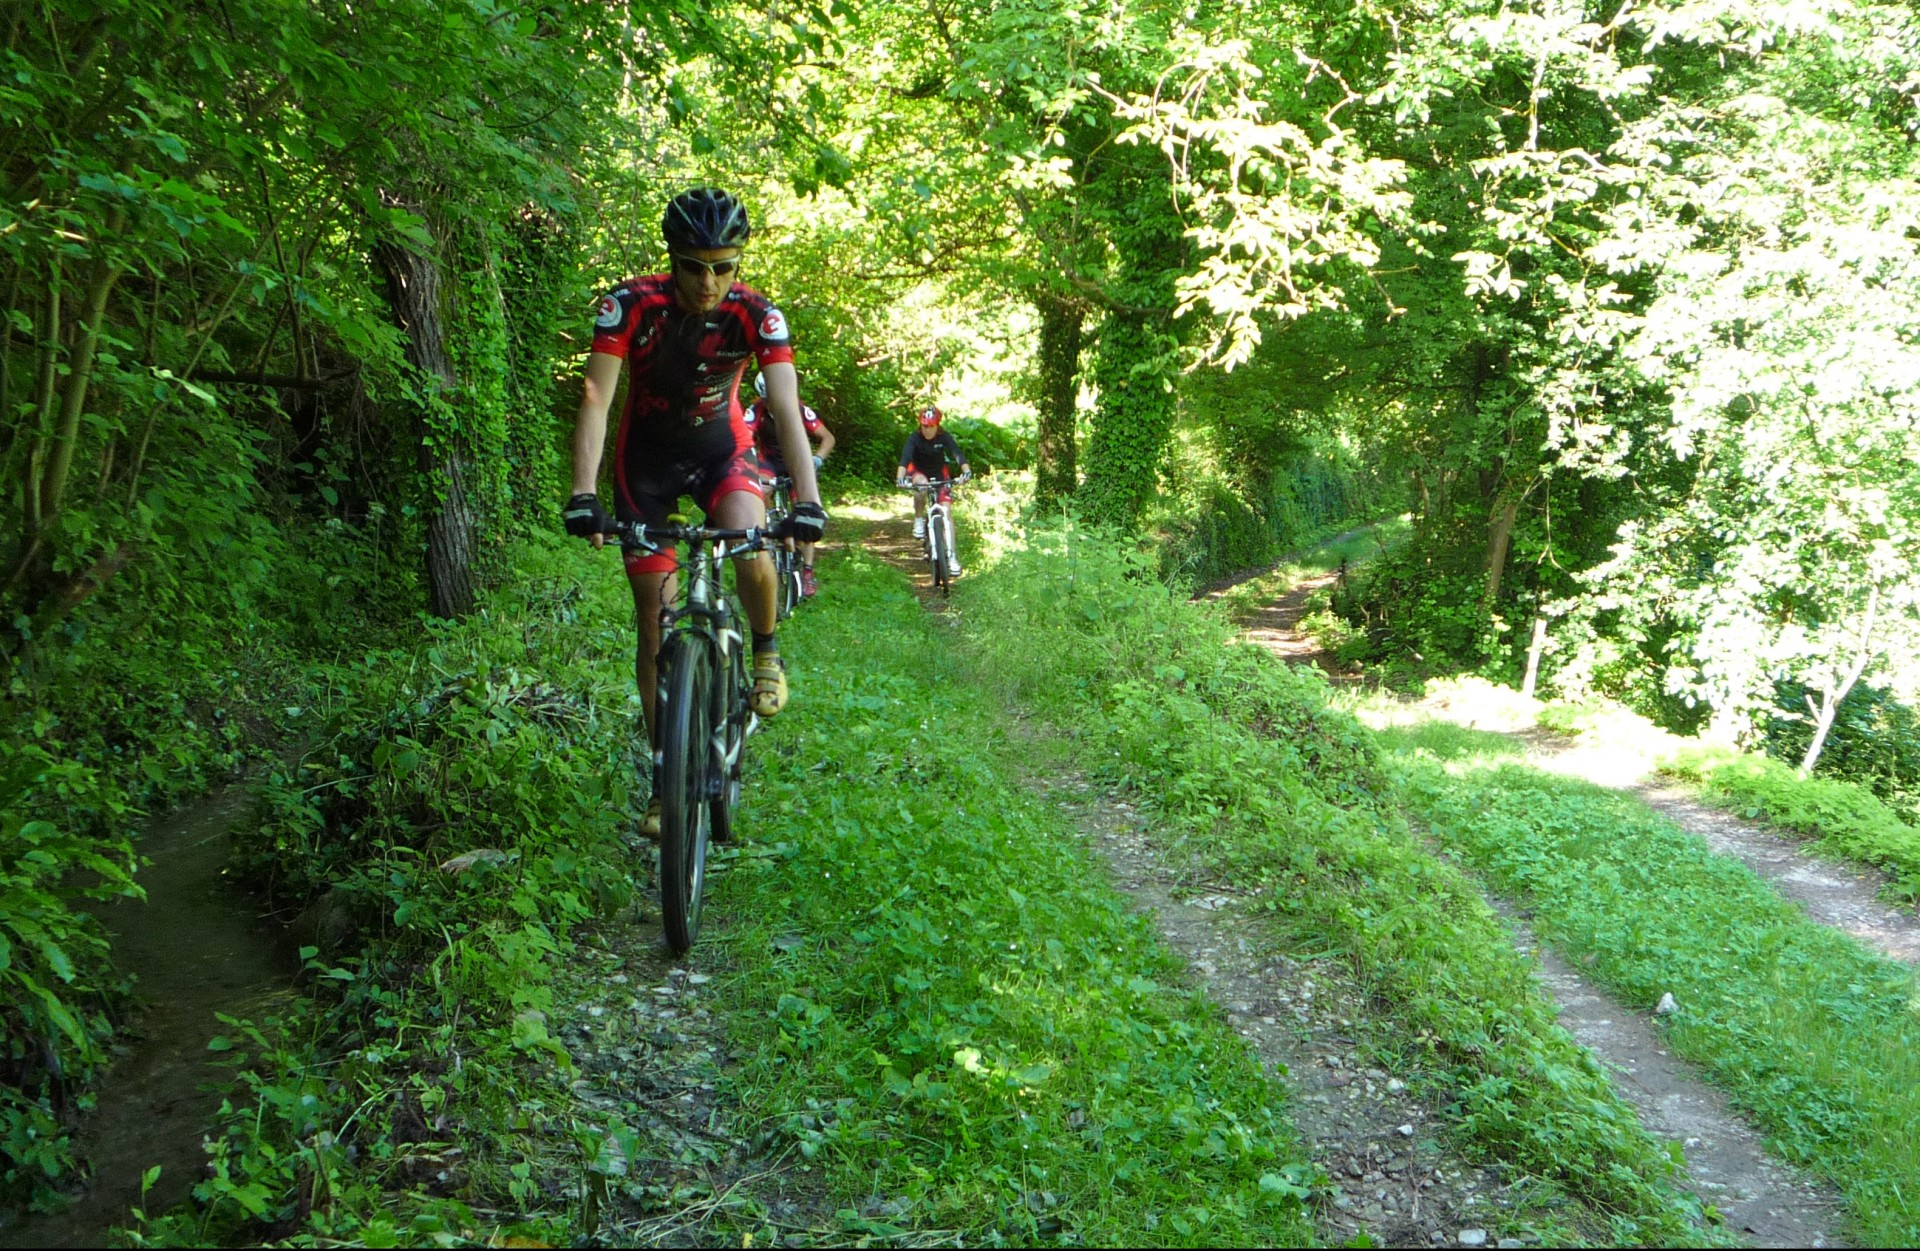 Bike Tour Umbria: Greenway Nera River in MTB